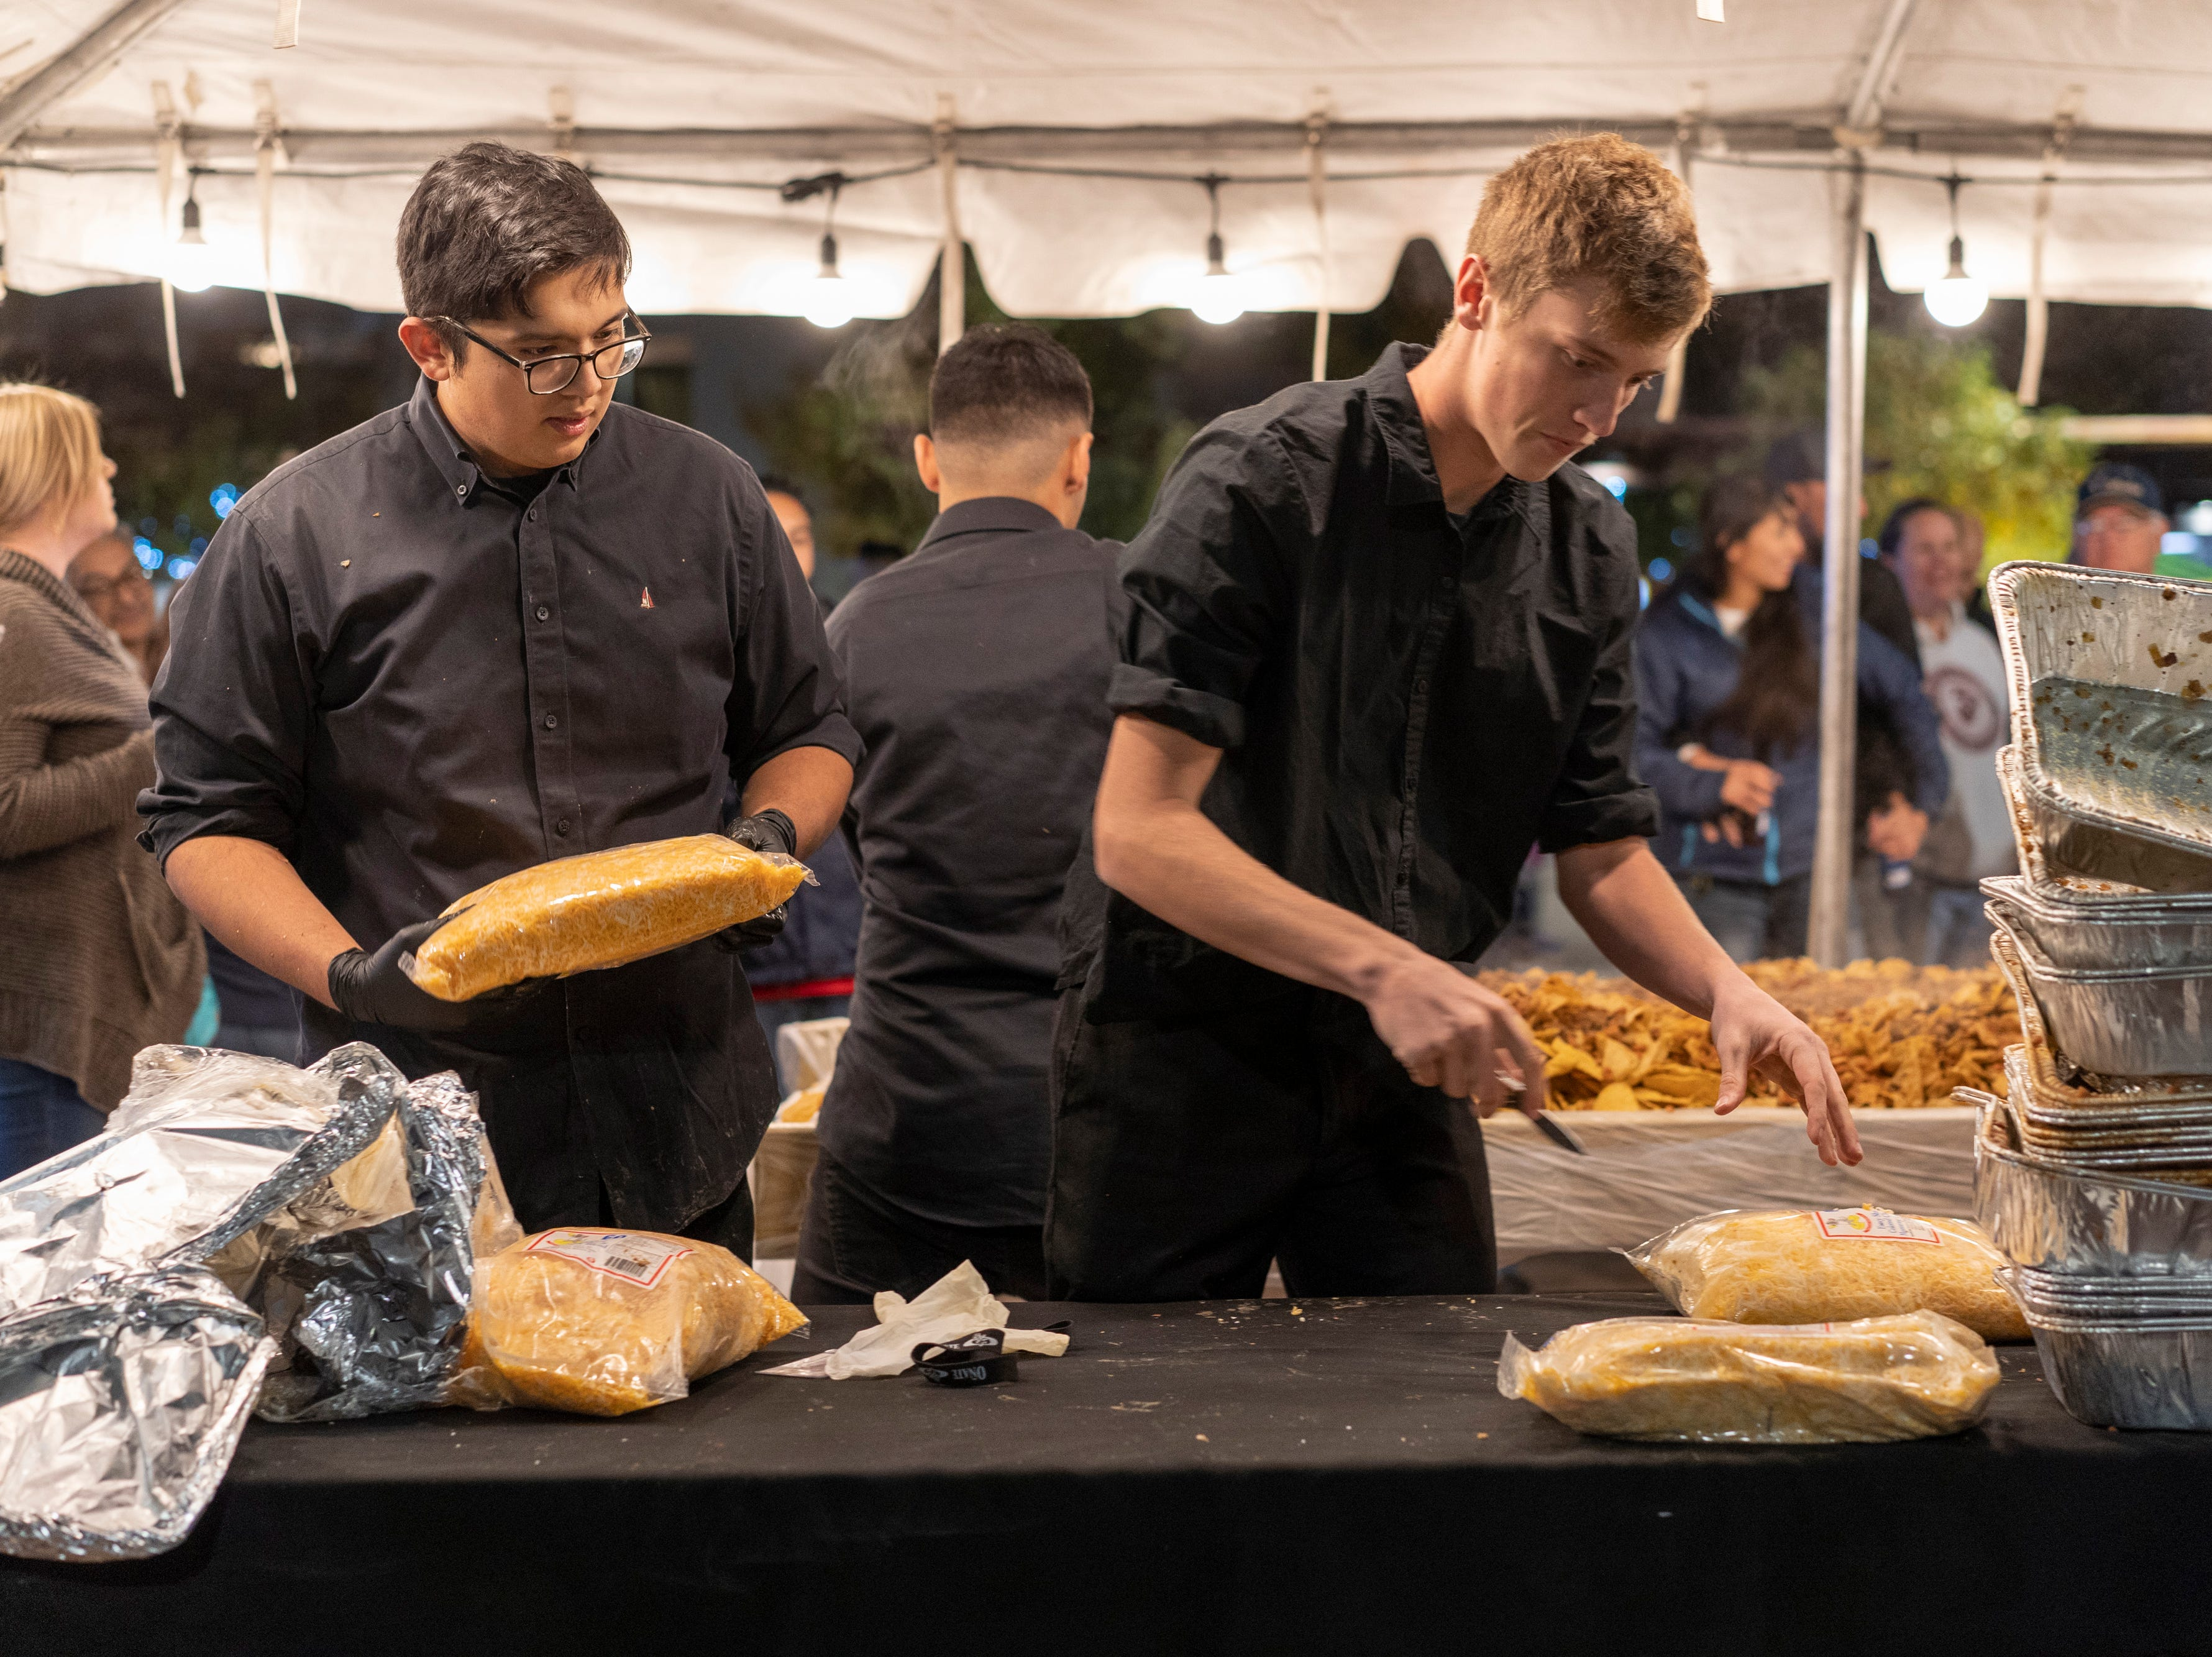 Dickerson's Catering employees get cheese ready for Noche de Nachos. Las Cruces unofficially set the record for world's largest serving of nachos Saturday, Nov. 10, 2018, in downtown Las Cruces.